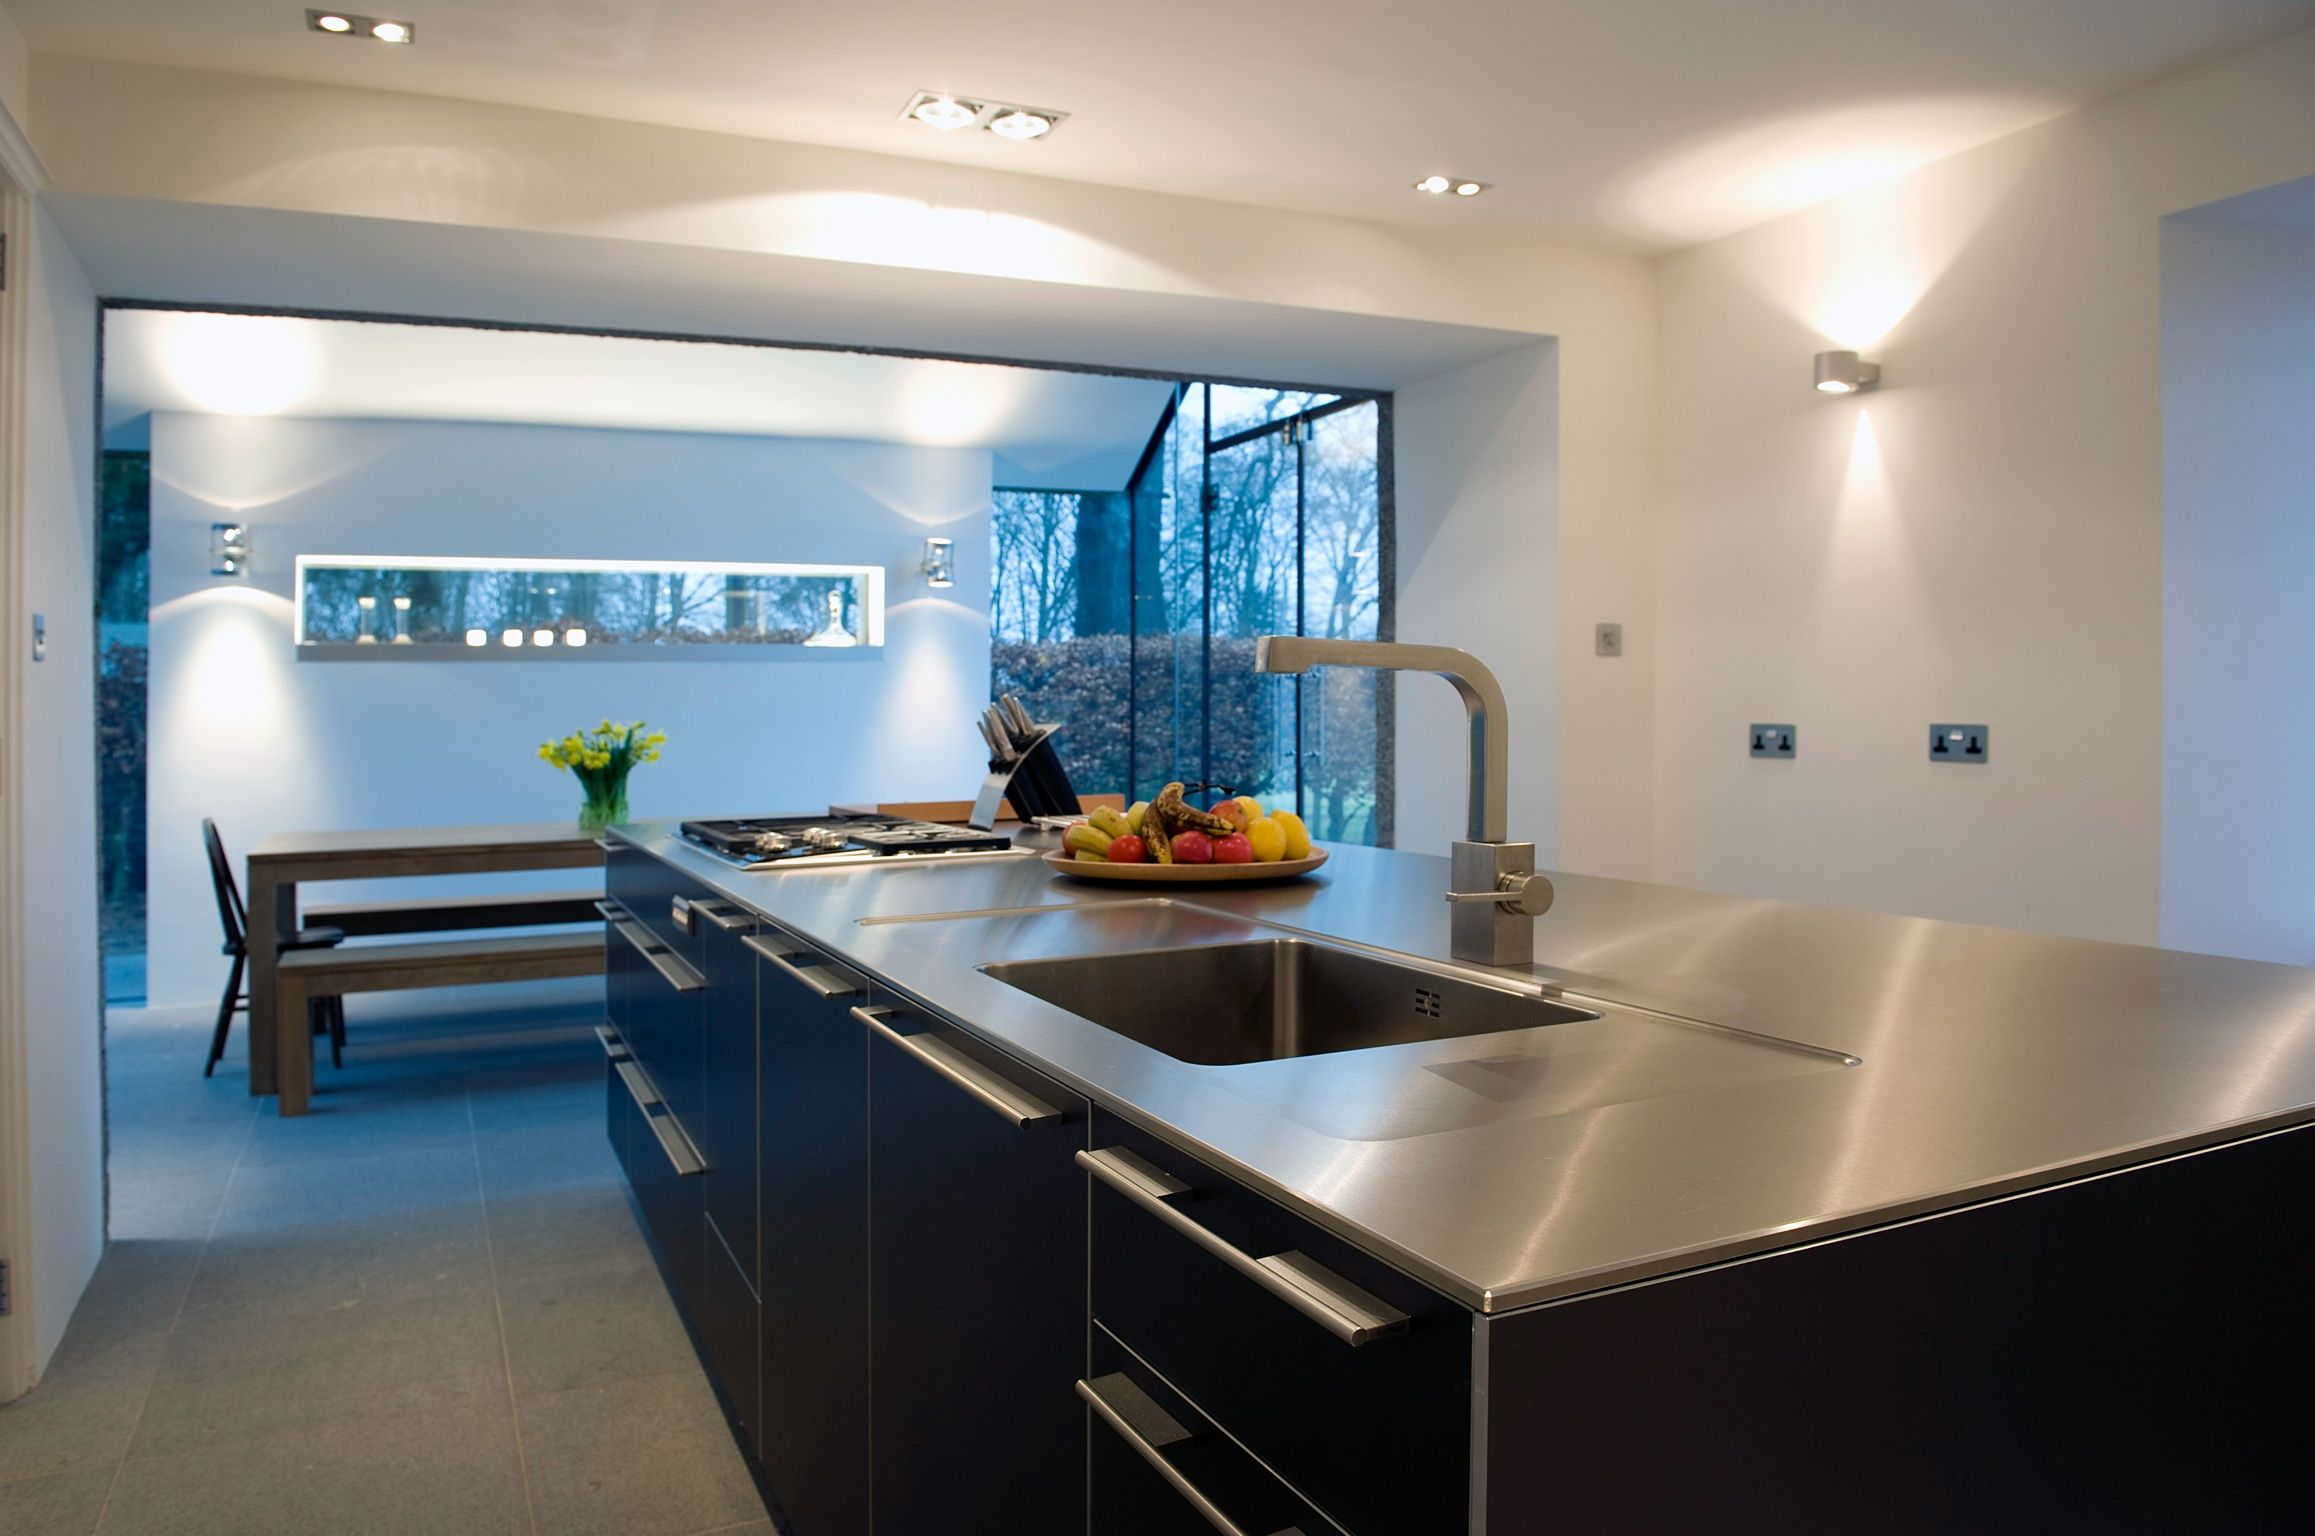 Prospect house kitchen with Bulthaup island unit